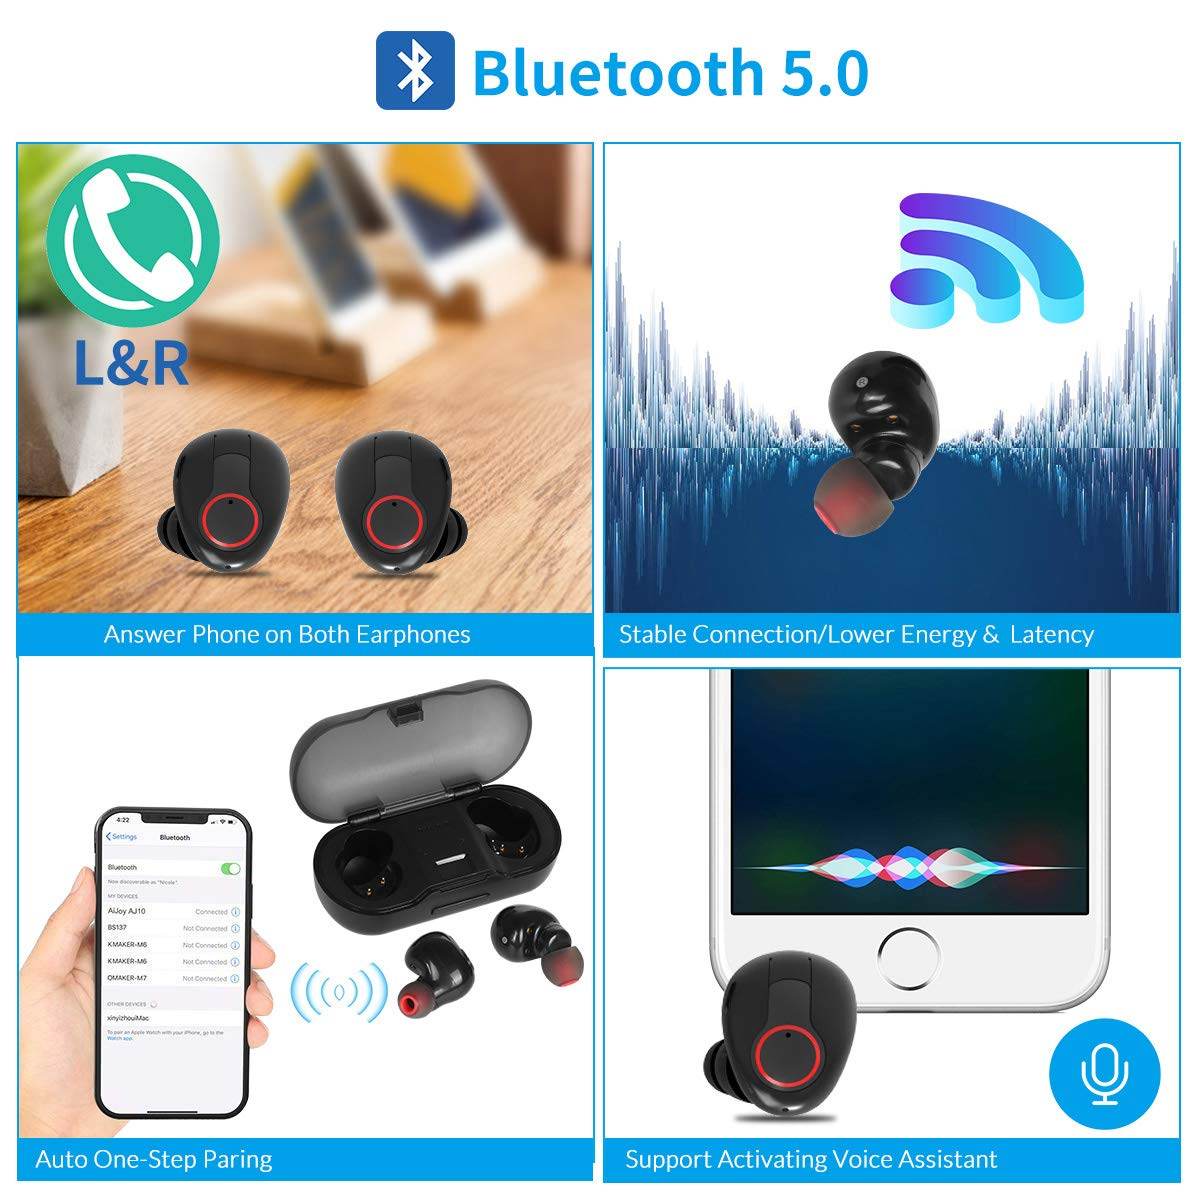 Waterproof Bluetooth 5.0 Wireless Earbuds with Portable Charging Case, Mini in-Ear Earphones Invisible Dot 3D Stereo Sound Earbuds, Sport Headphones with Built-in Mic